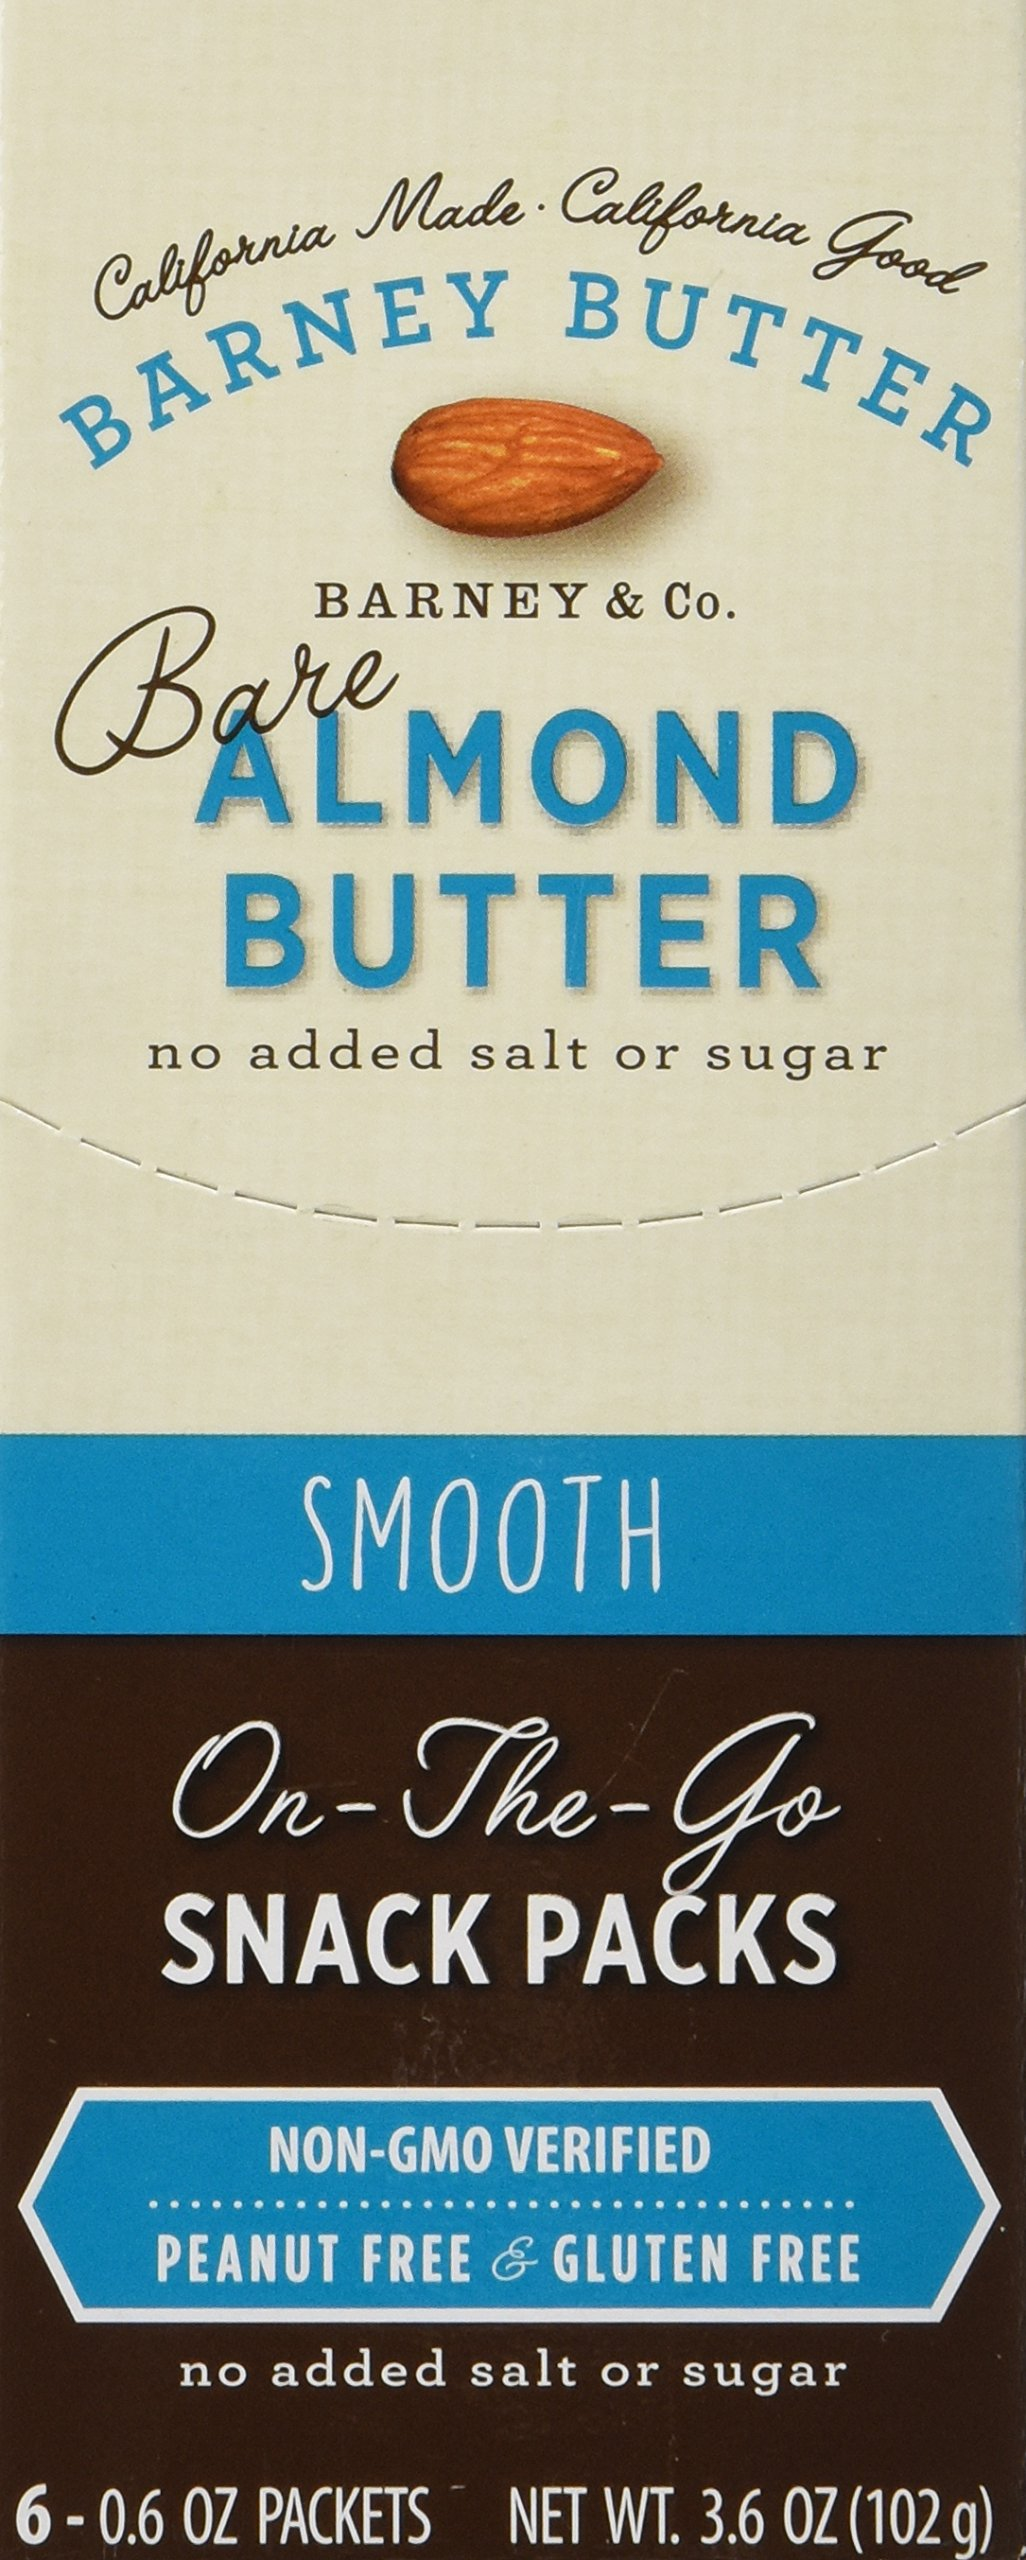 Barney Butter - All Natural Almond Butter - Bare Smooth - Single Snack Pack